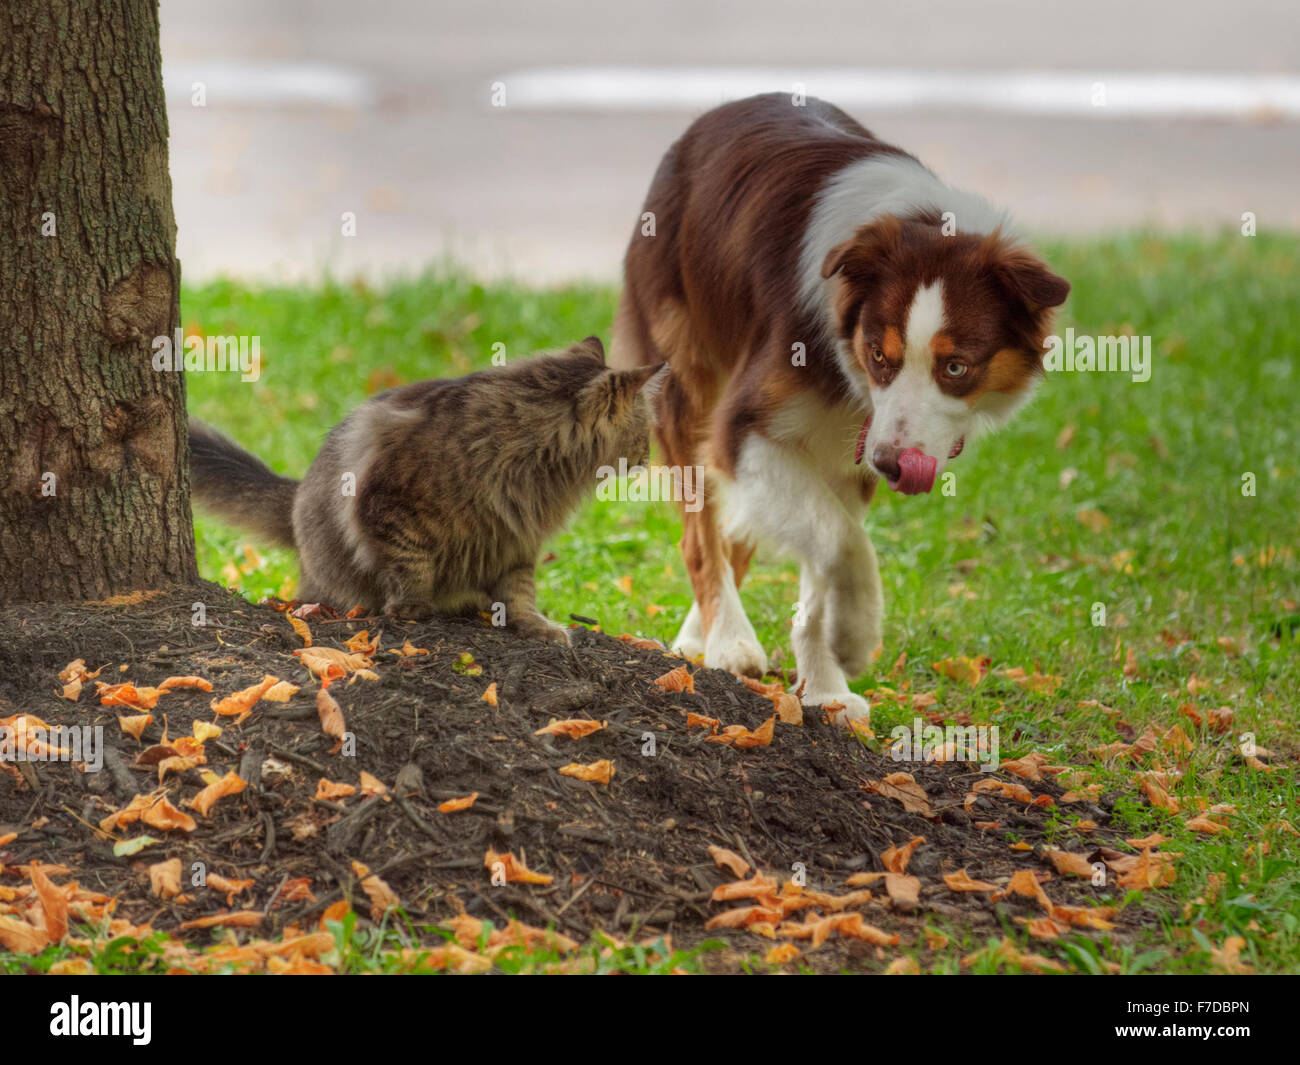 A dog and cat face off against each other - Stock Image